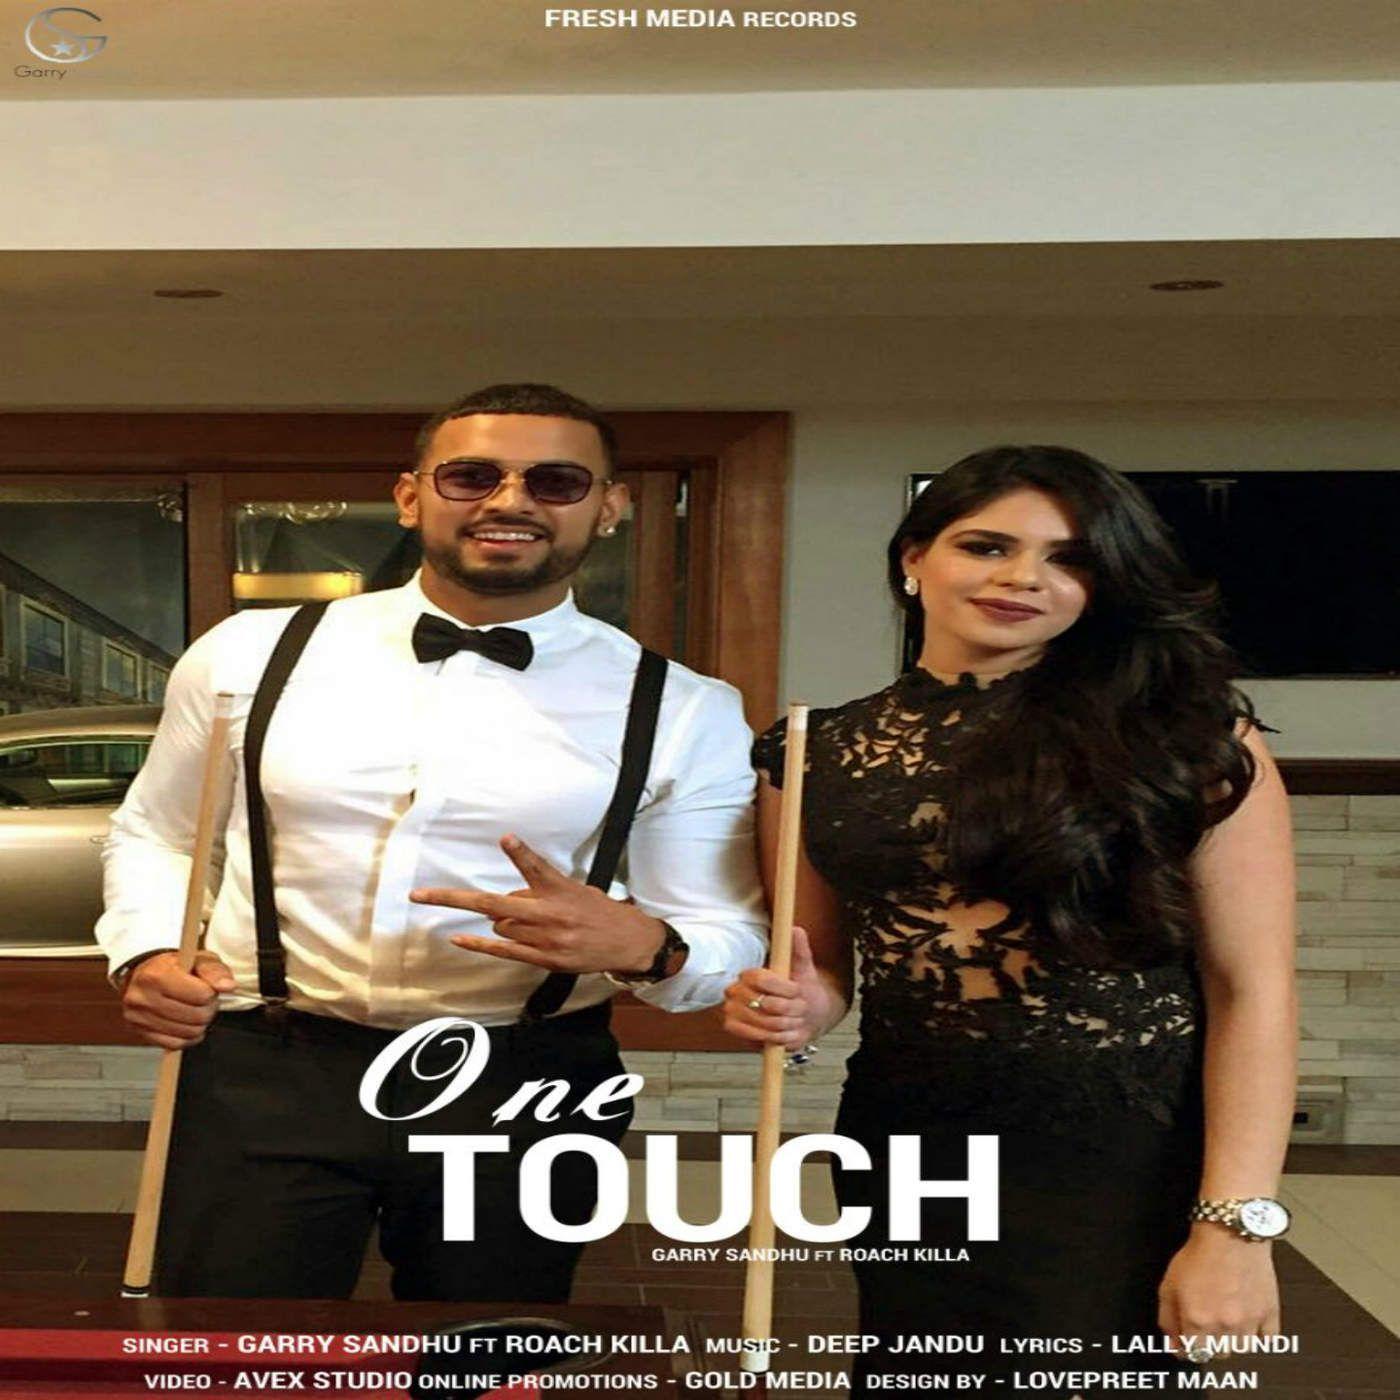 One Touch Garry Sandhu Single Mp3 Song Mp3 Song Download Songs